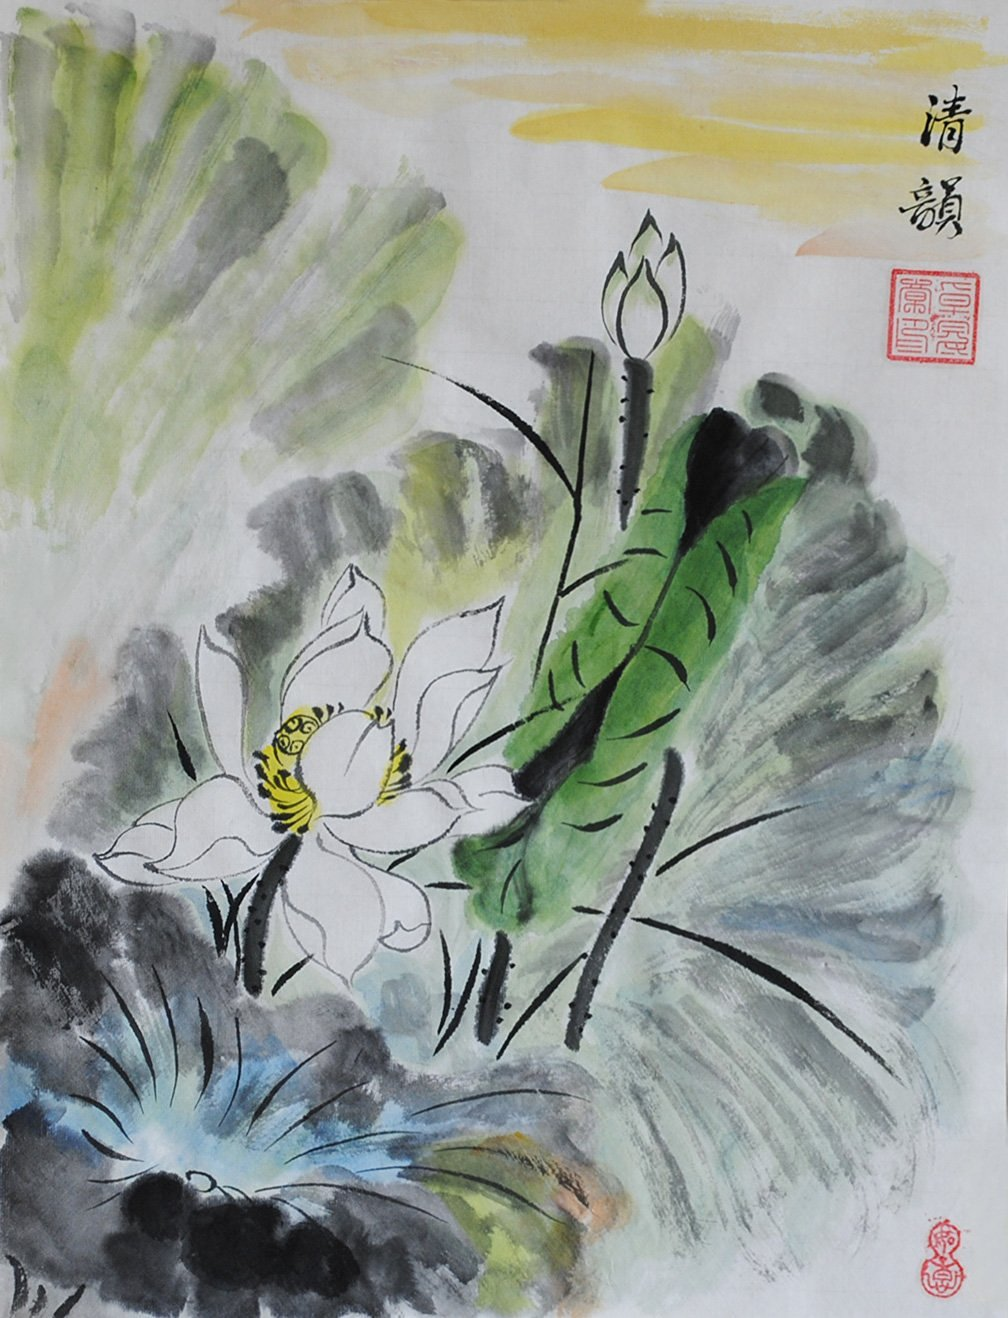 Buy oridental artwork unframed hand painted art chinese brush ink oridental artwork unframed hand painted art chinese brush ink and wash watercolor painting drawing picture on izmirmasajfo